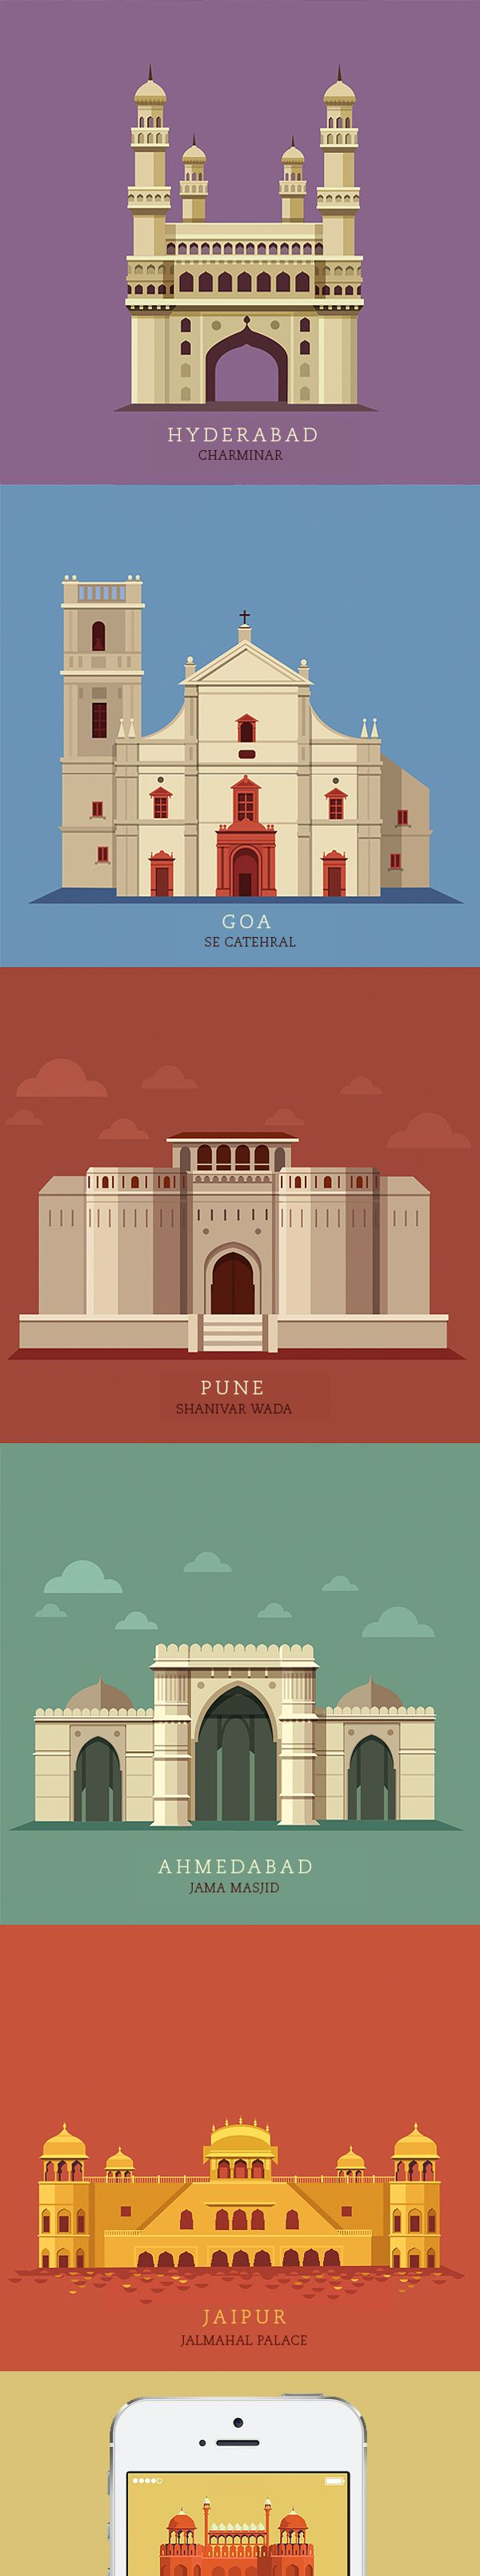 City Guide - Times Group on Behance